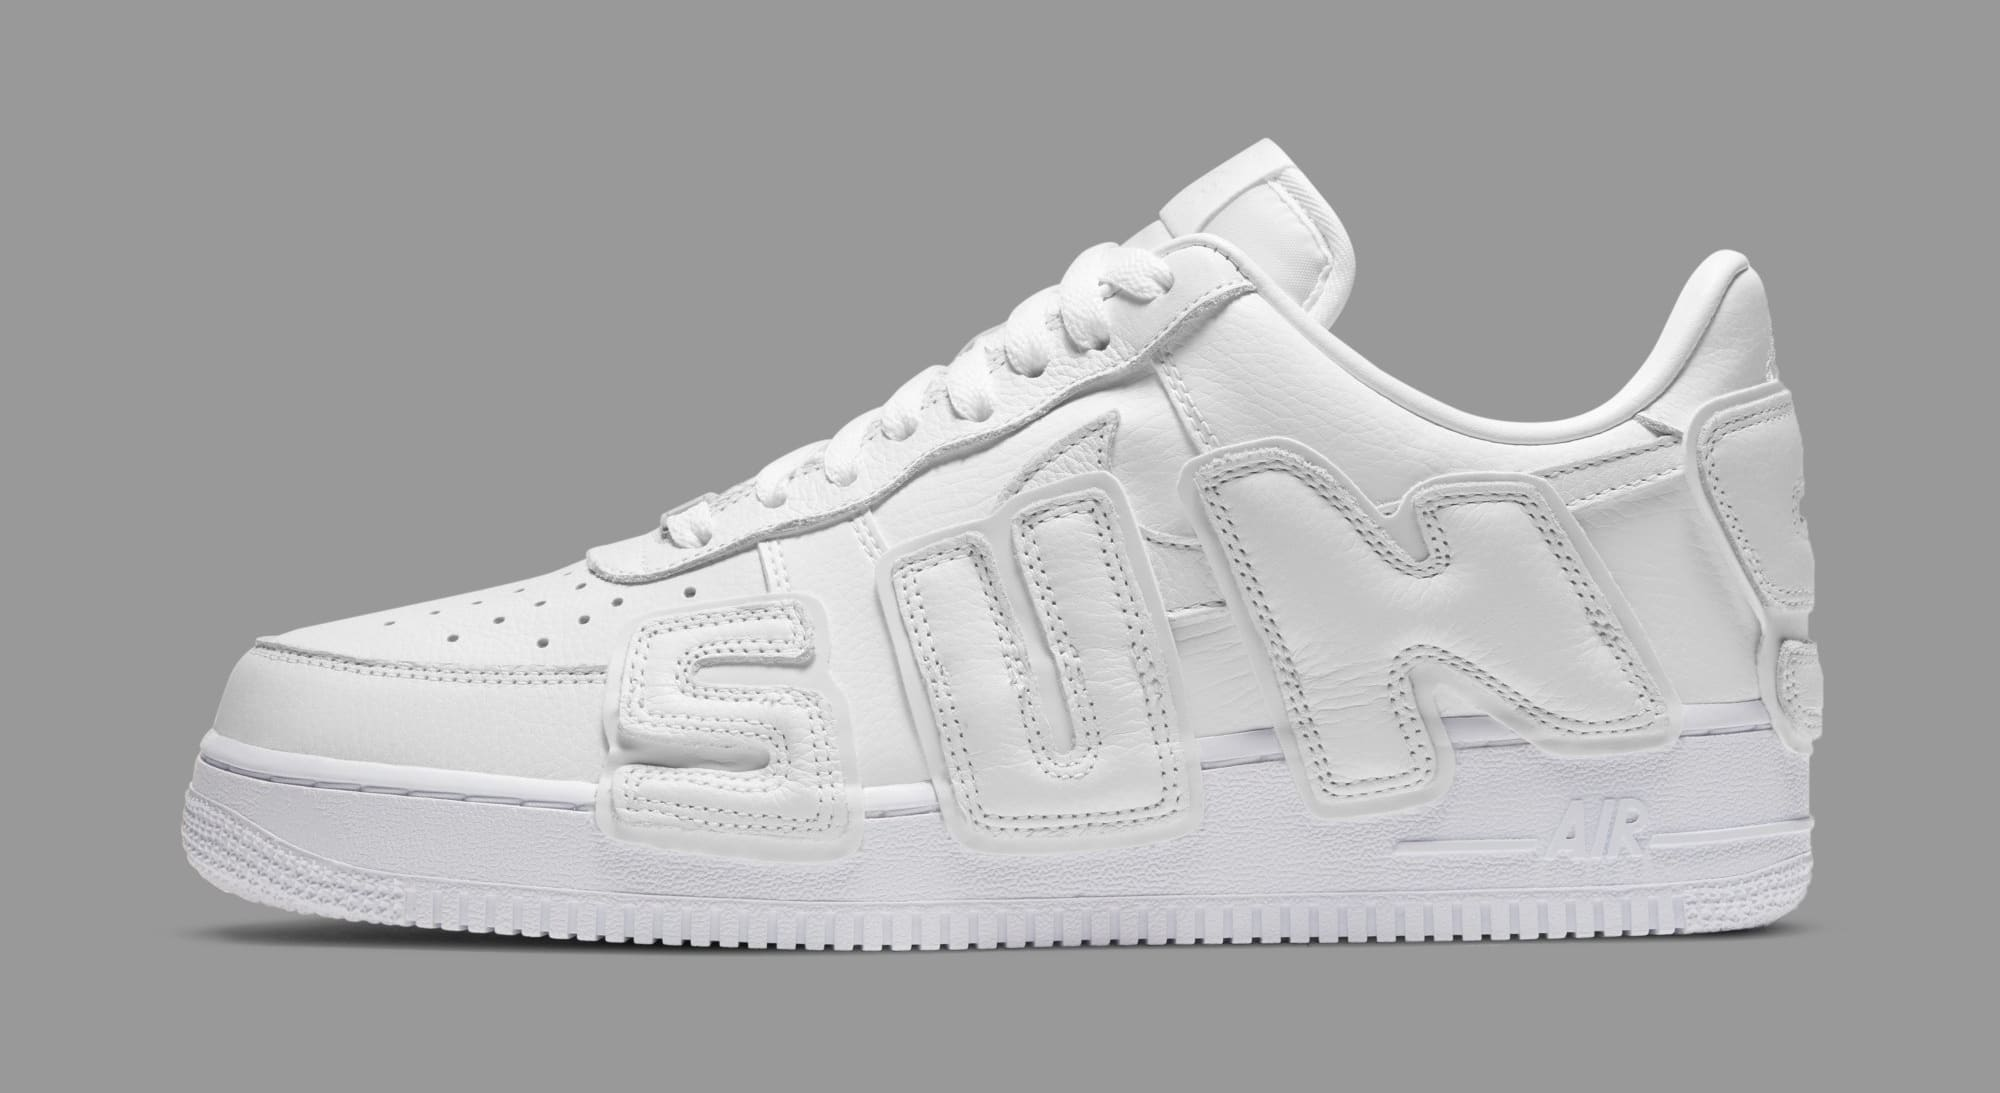 Cactus Plant Flea Market x Nike Air Force 1 Low 'White' DD7050-100 Lateral